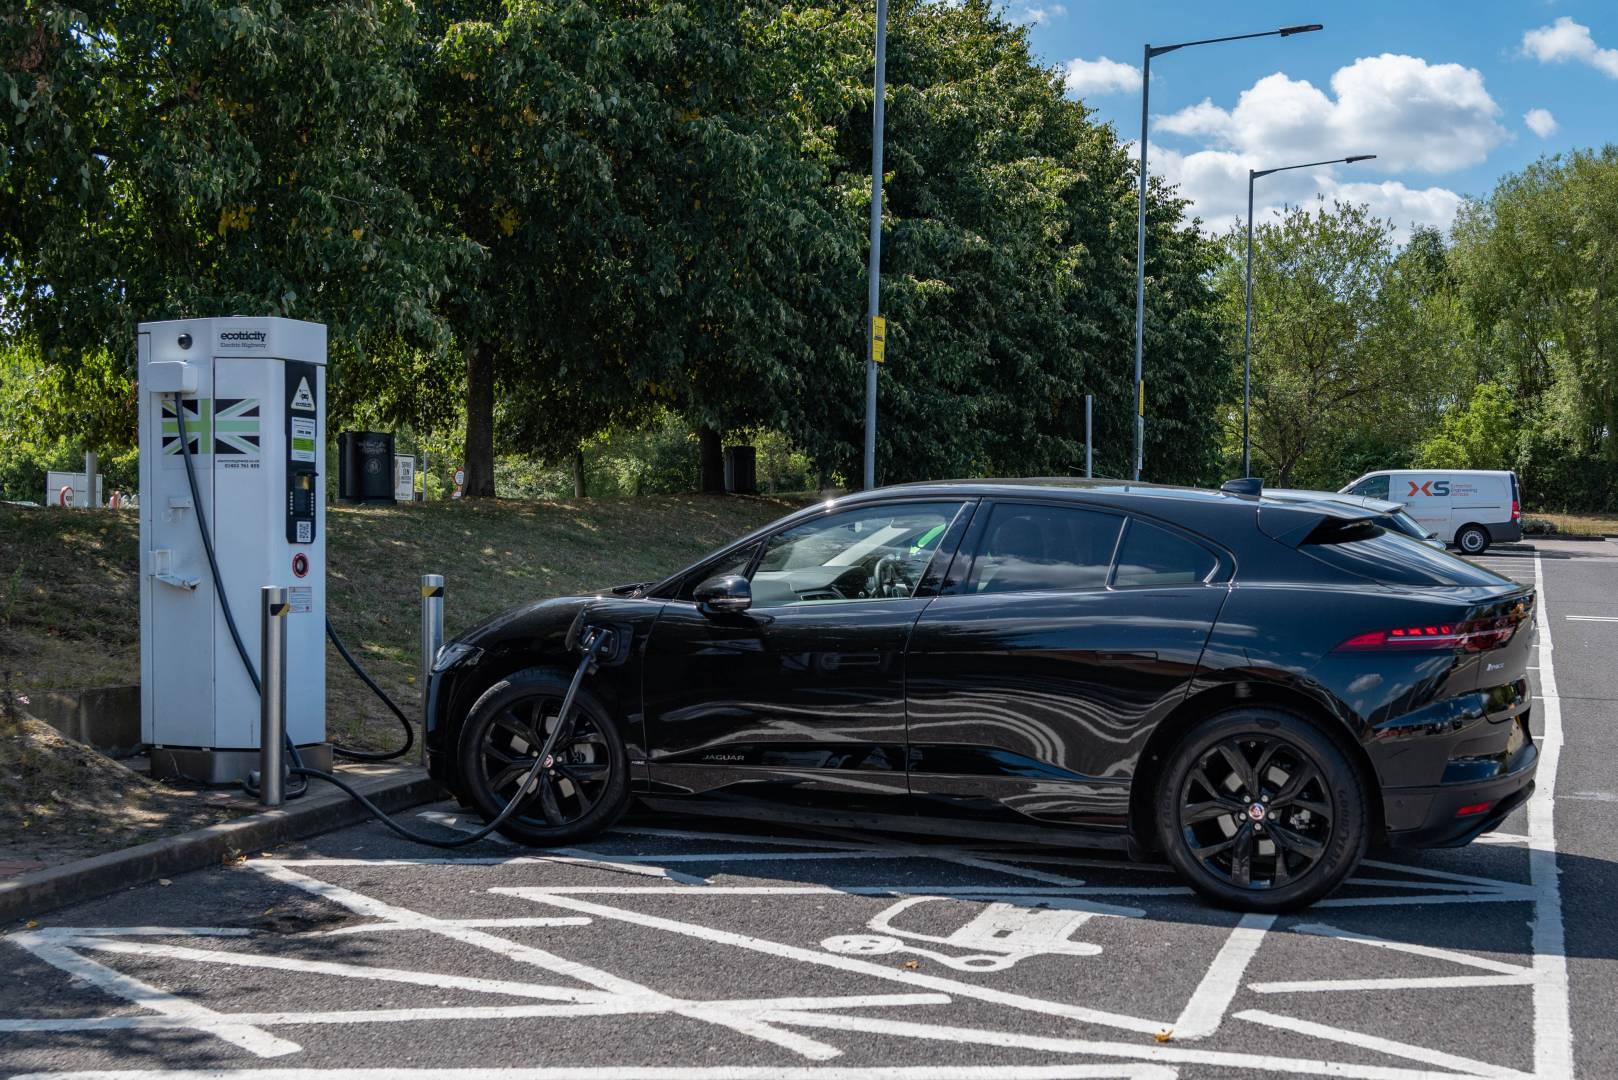 So far I haven't really needed the charging infrastructure, but it's as well to plug in occasionally to get to know the many and varied tricks that are necessary.